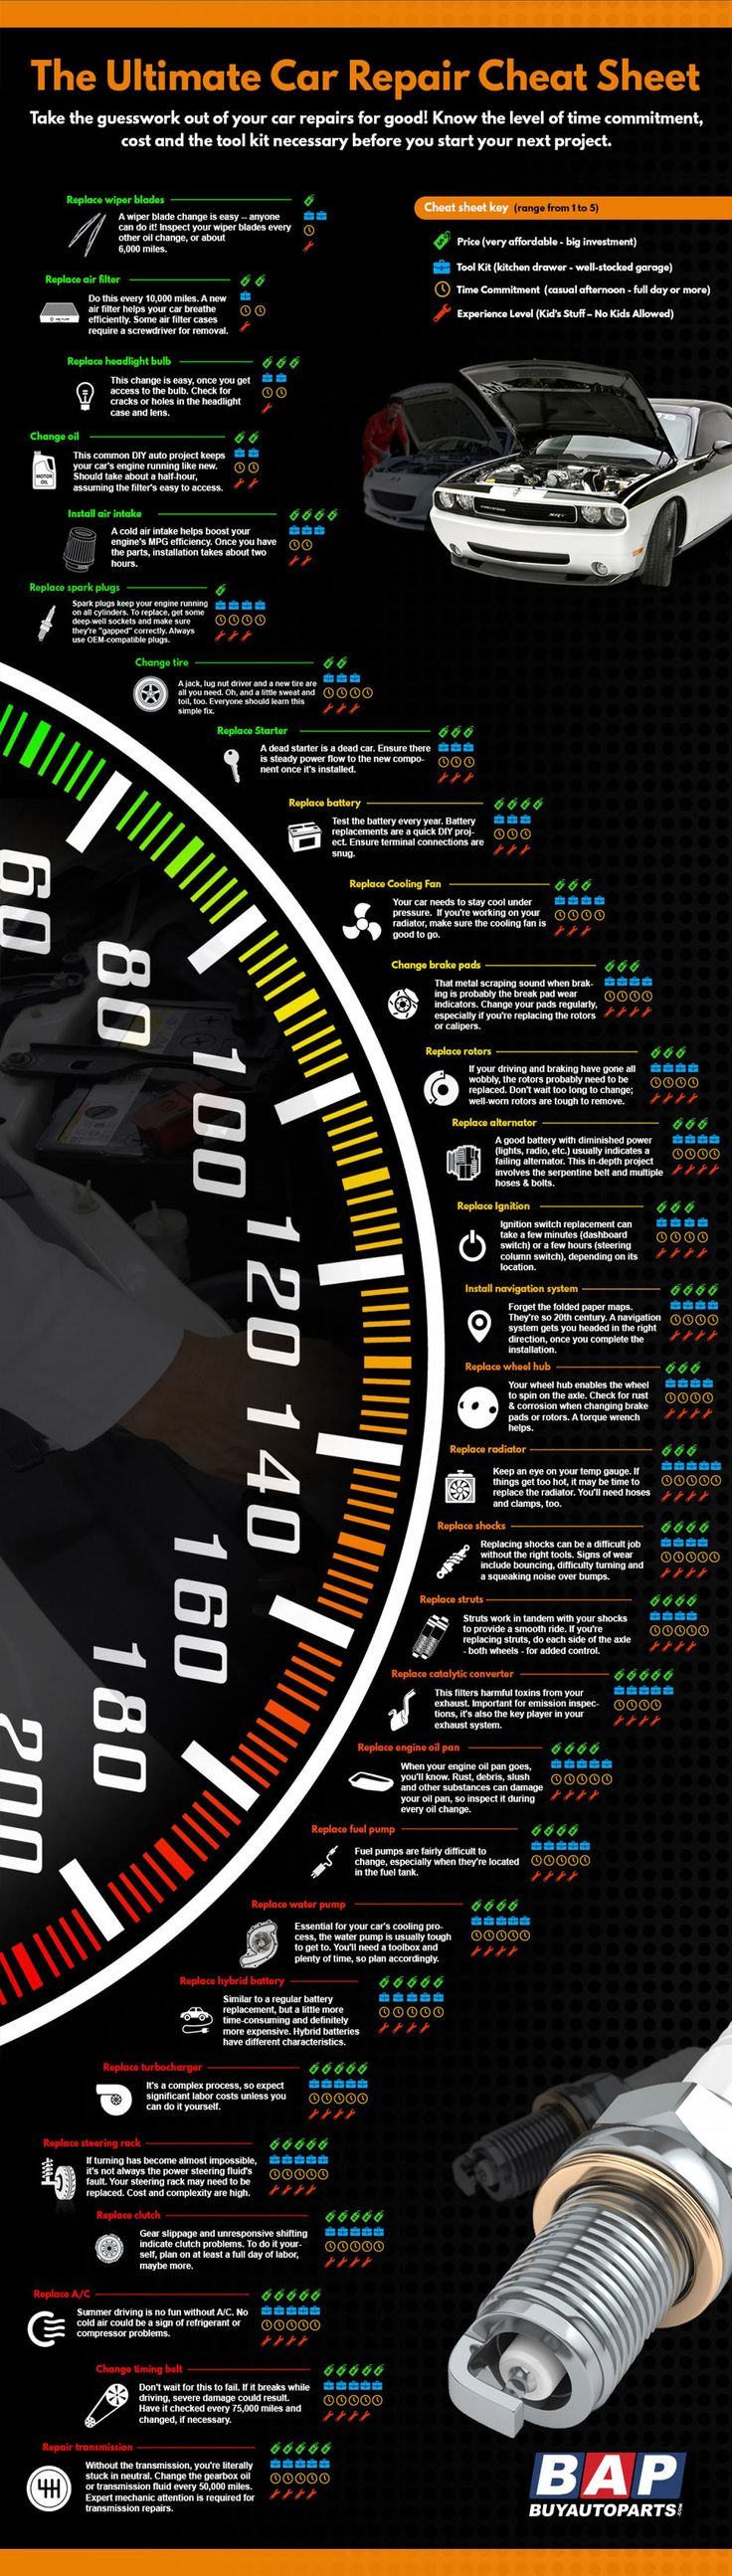 Guide to auto replacement parts infographic topic car driver mechanic troubleshooting